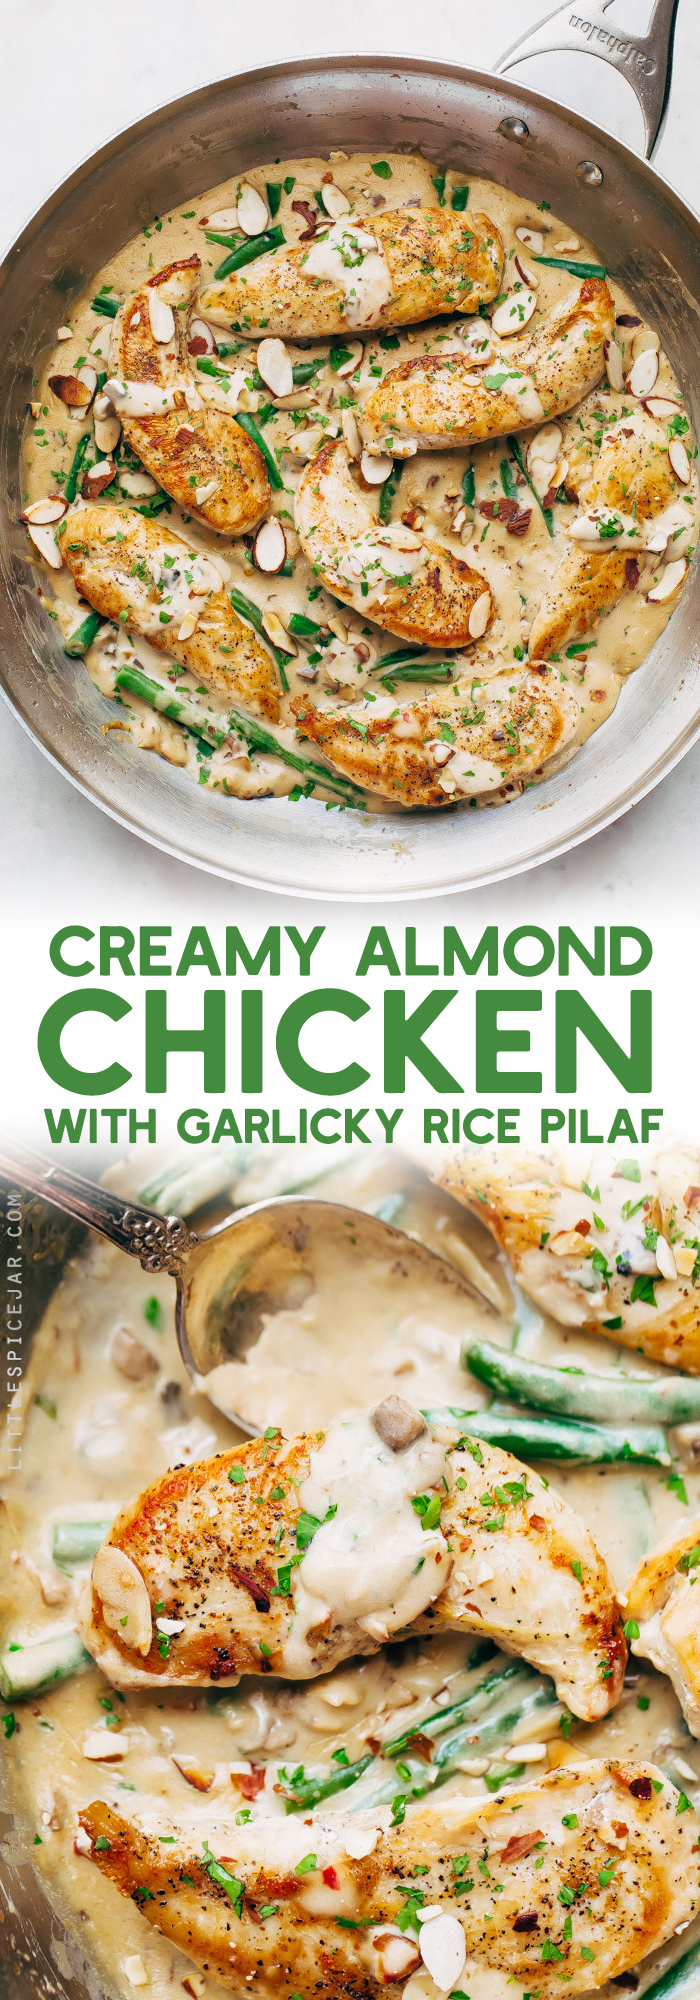 Creamy Almond Chicken with Rice Pilaf - seared chicken tenders in homemade cream sauce, sooo good! #sponsored #chickenincreamsauce #skilletchicken #chickendinner @aldiusa | Littlespicejar.com